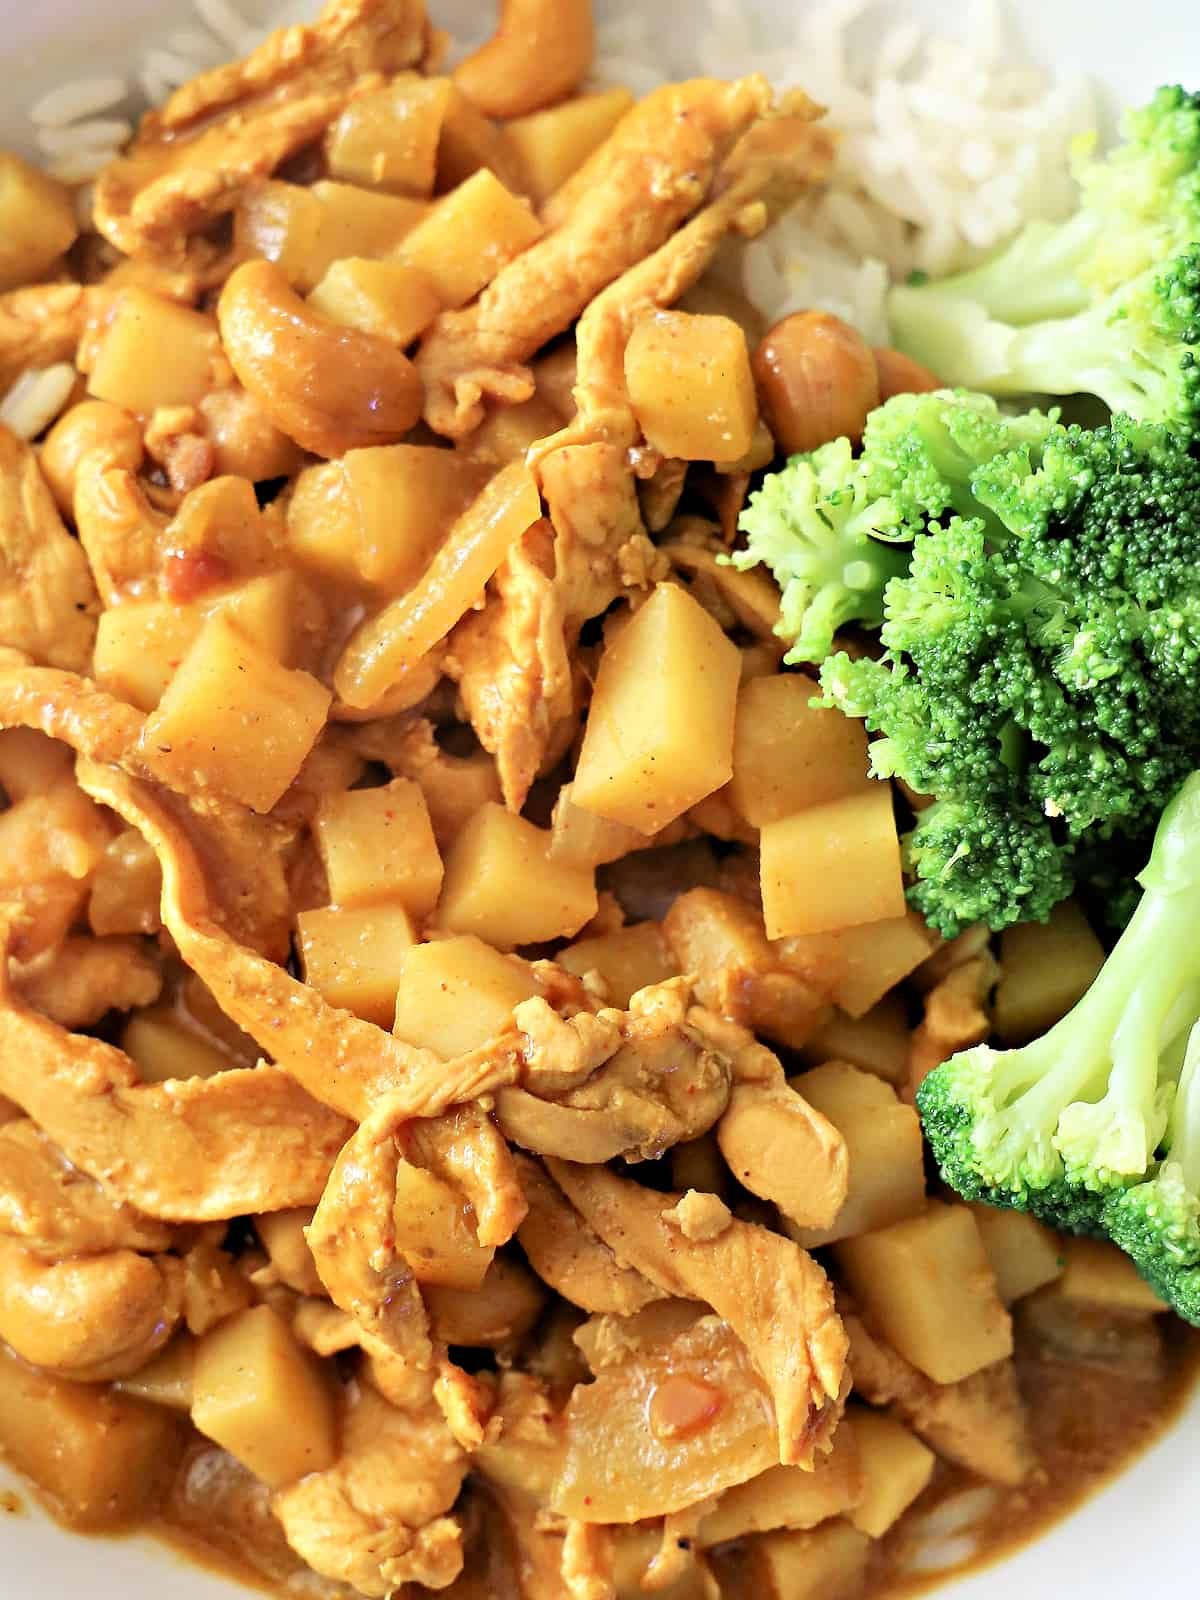 Massaman curry and broccoli in a bowl